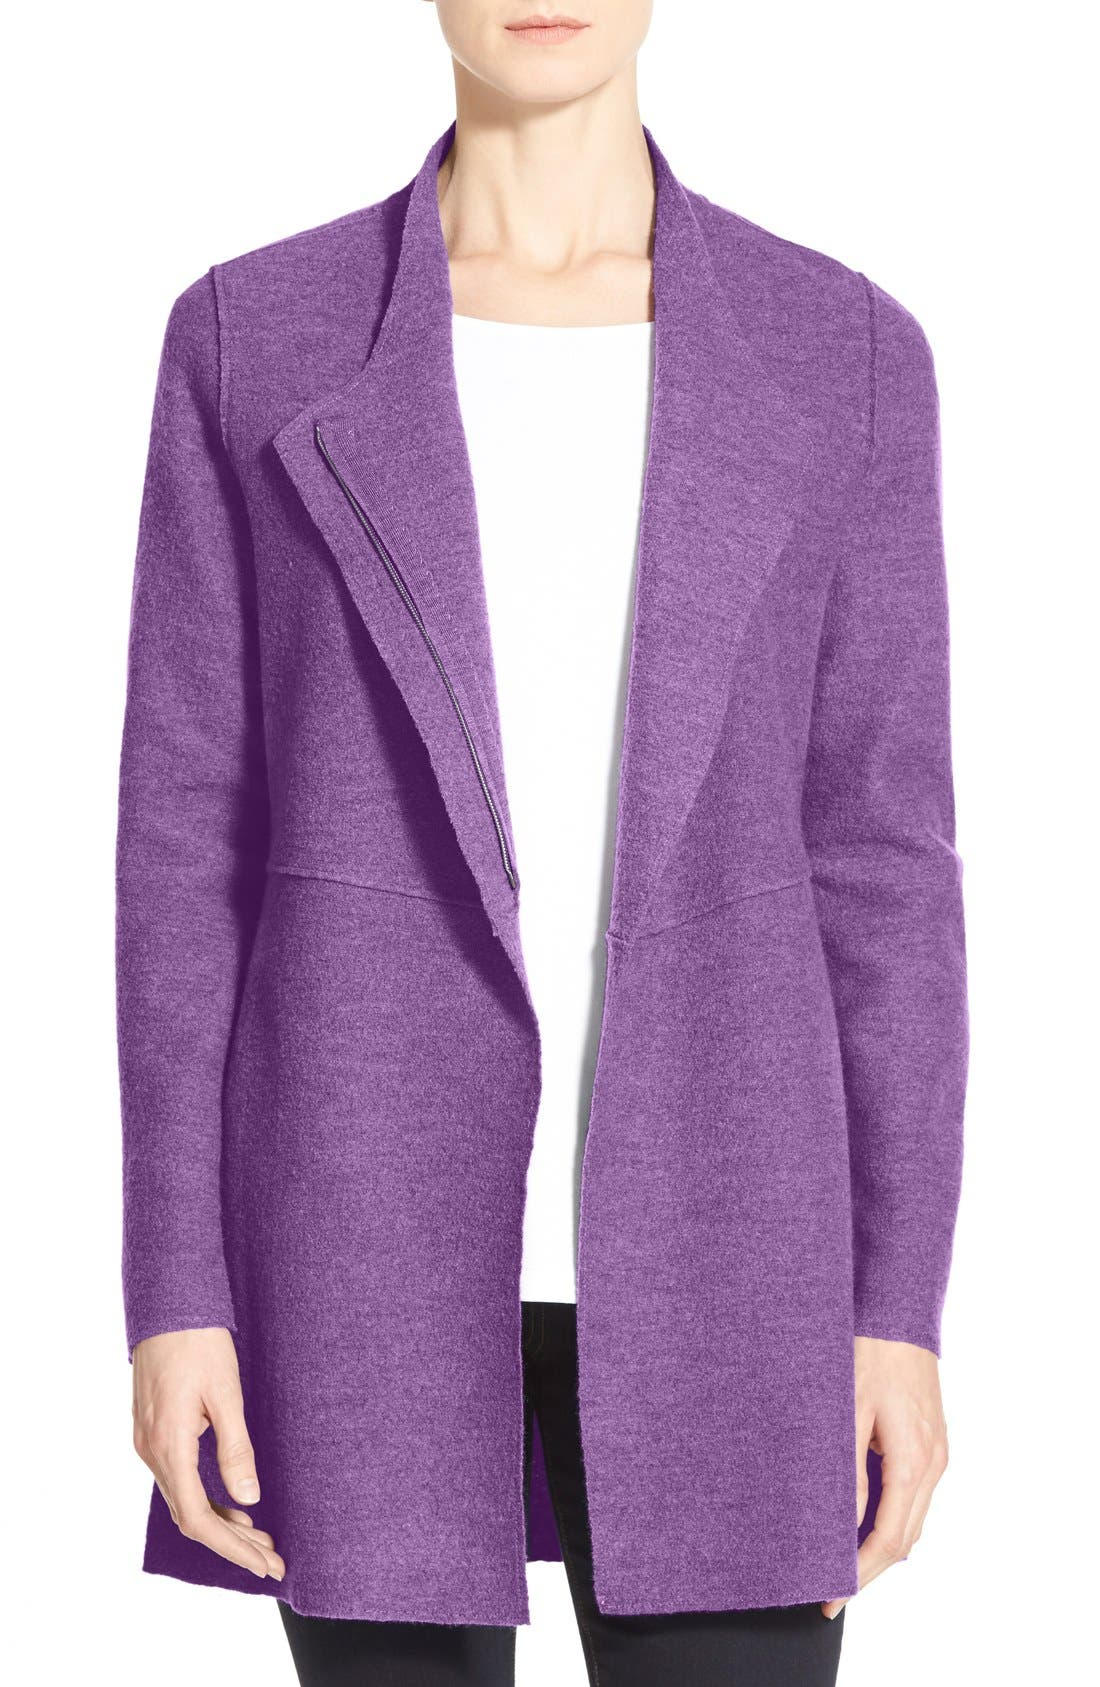 Alternate Image 1 Selected - Eileen Fisher Asymmetrical Boiled Merino Wool Jacket (Regular & Petite)